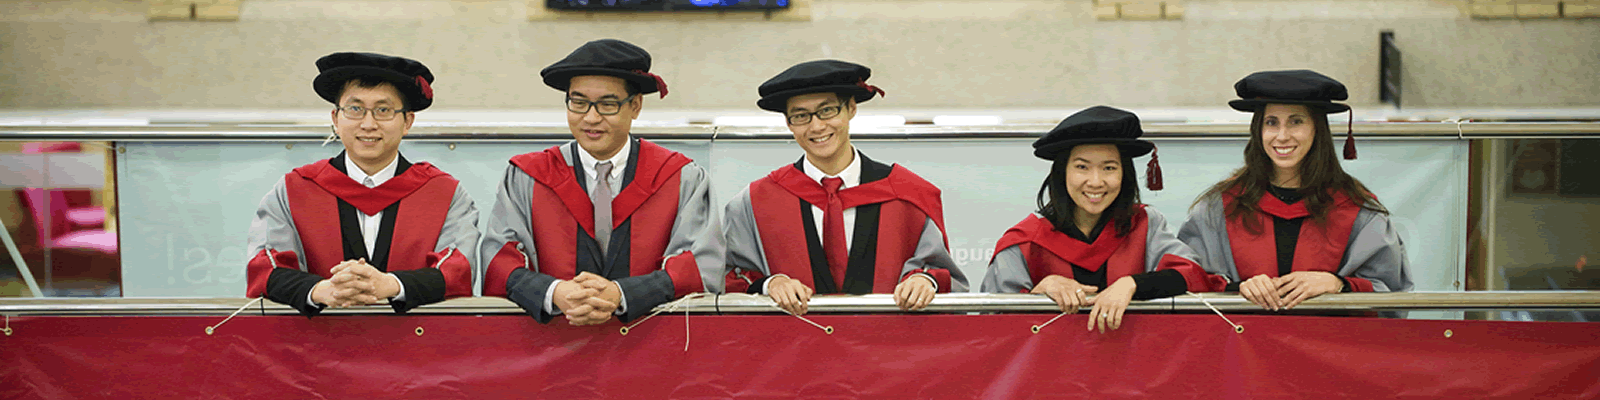 lancaster university postgraduate application deadline